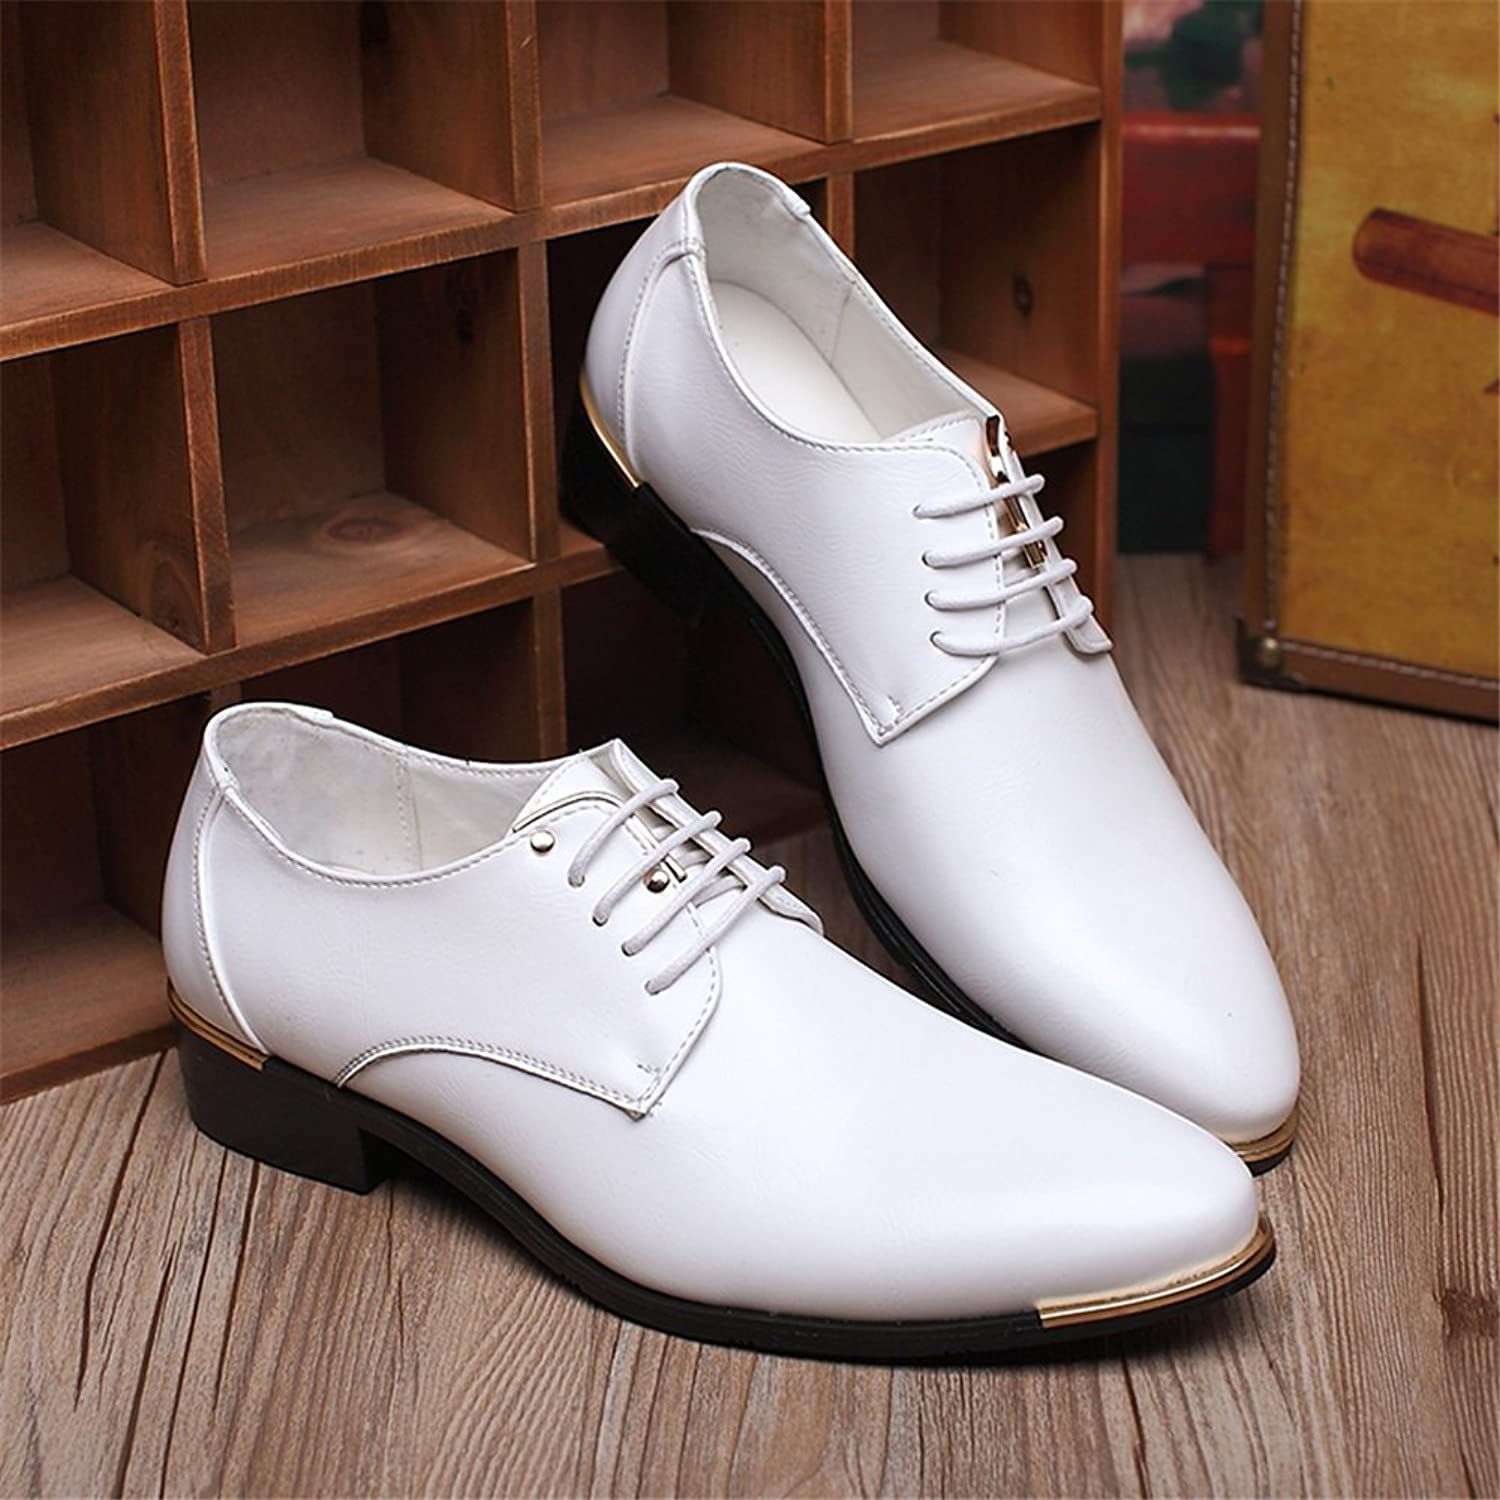 GLSHI Men's shoes PU Spring Fall Comfort Oxfords Lace-up for Casual White Black Formal Business Work Dress Wedding